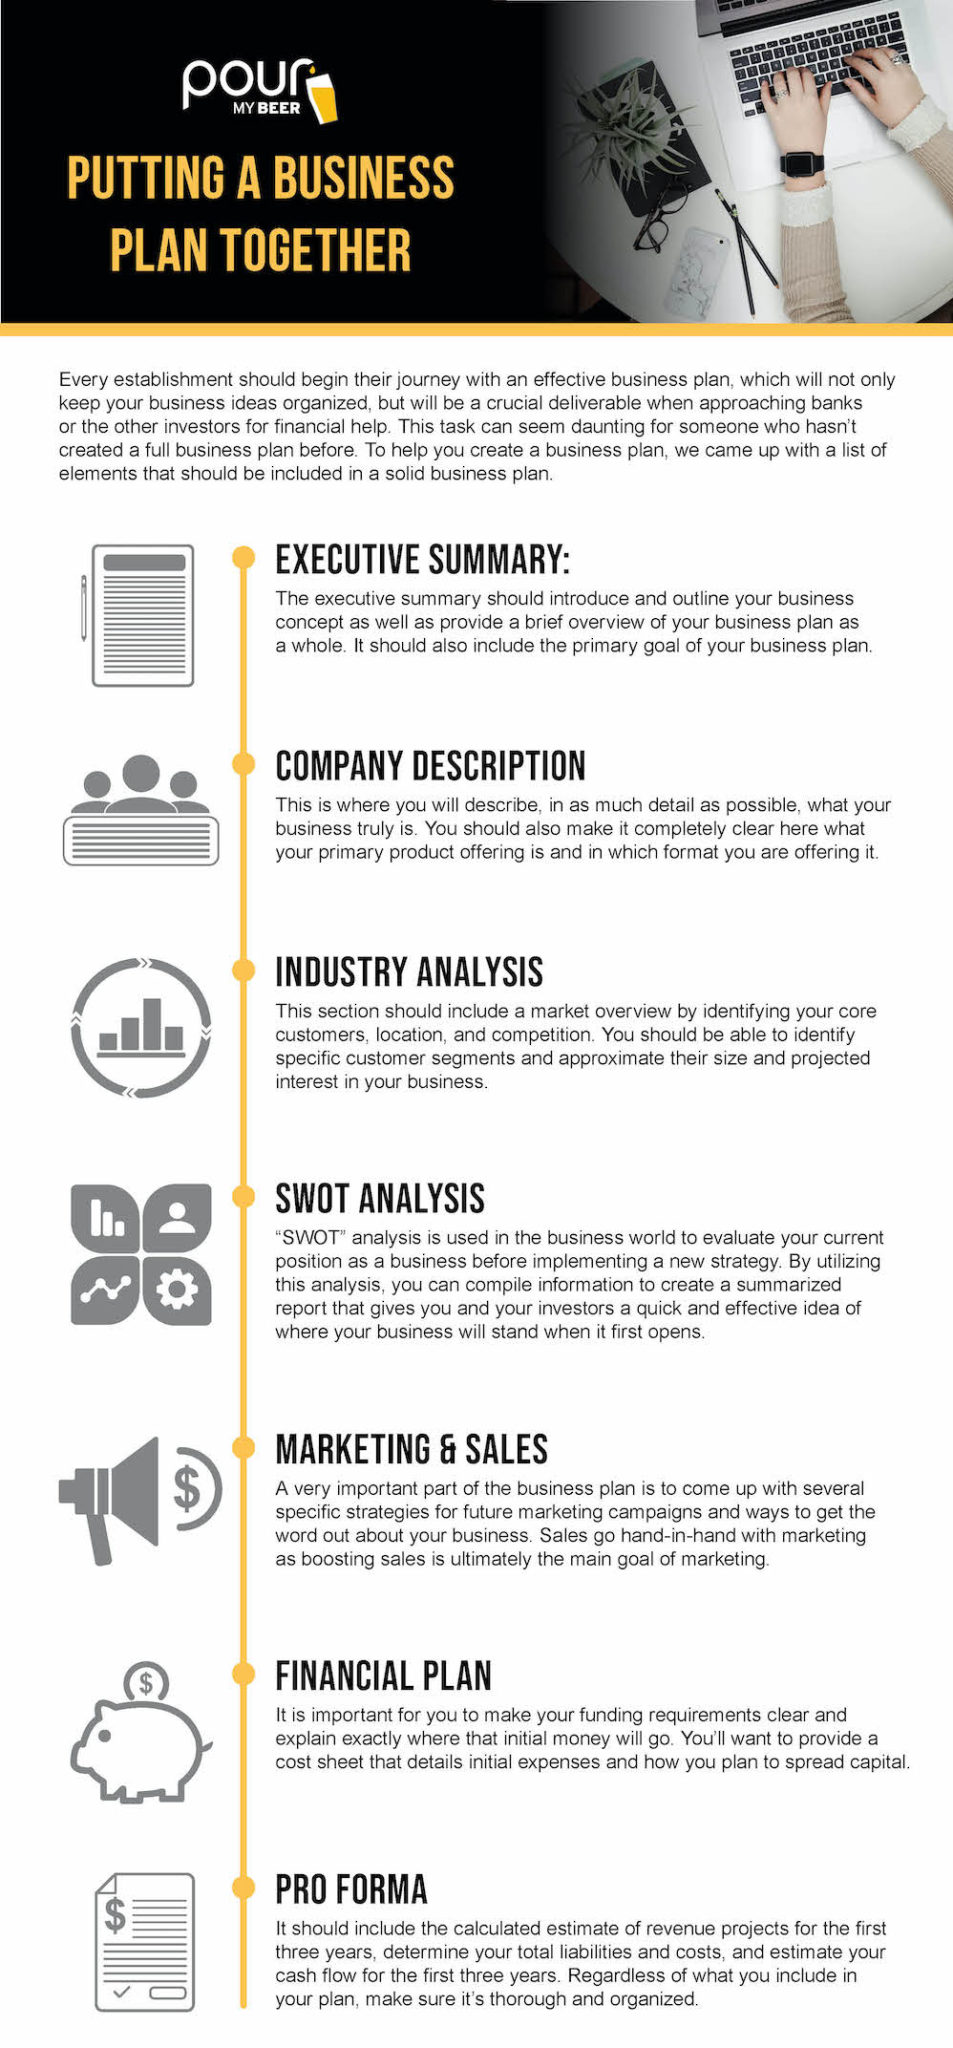 PourMyBeer putting a business plan together infographic